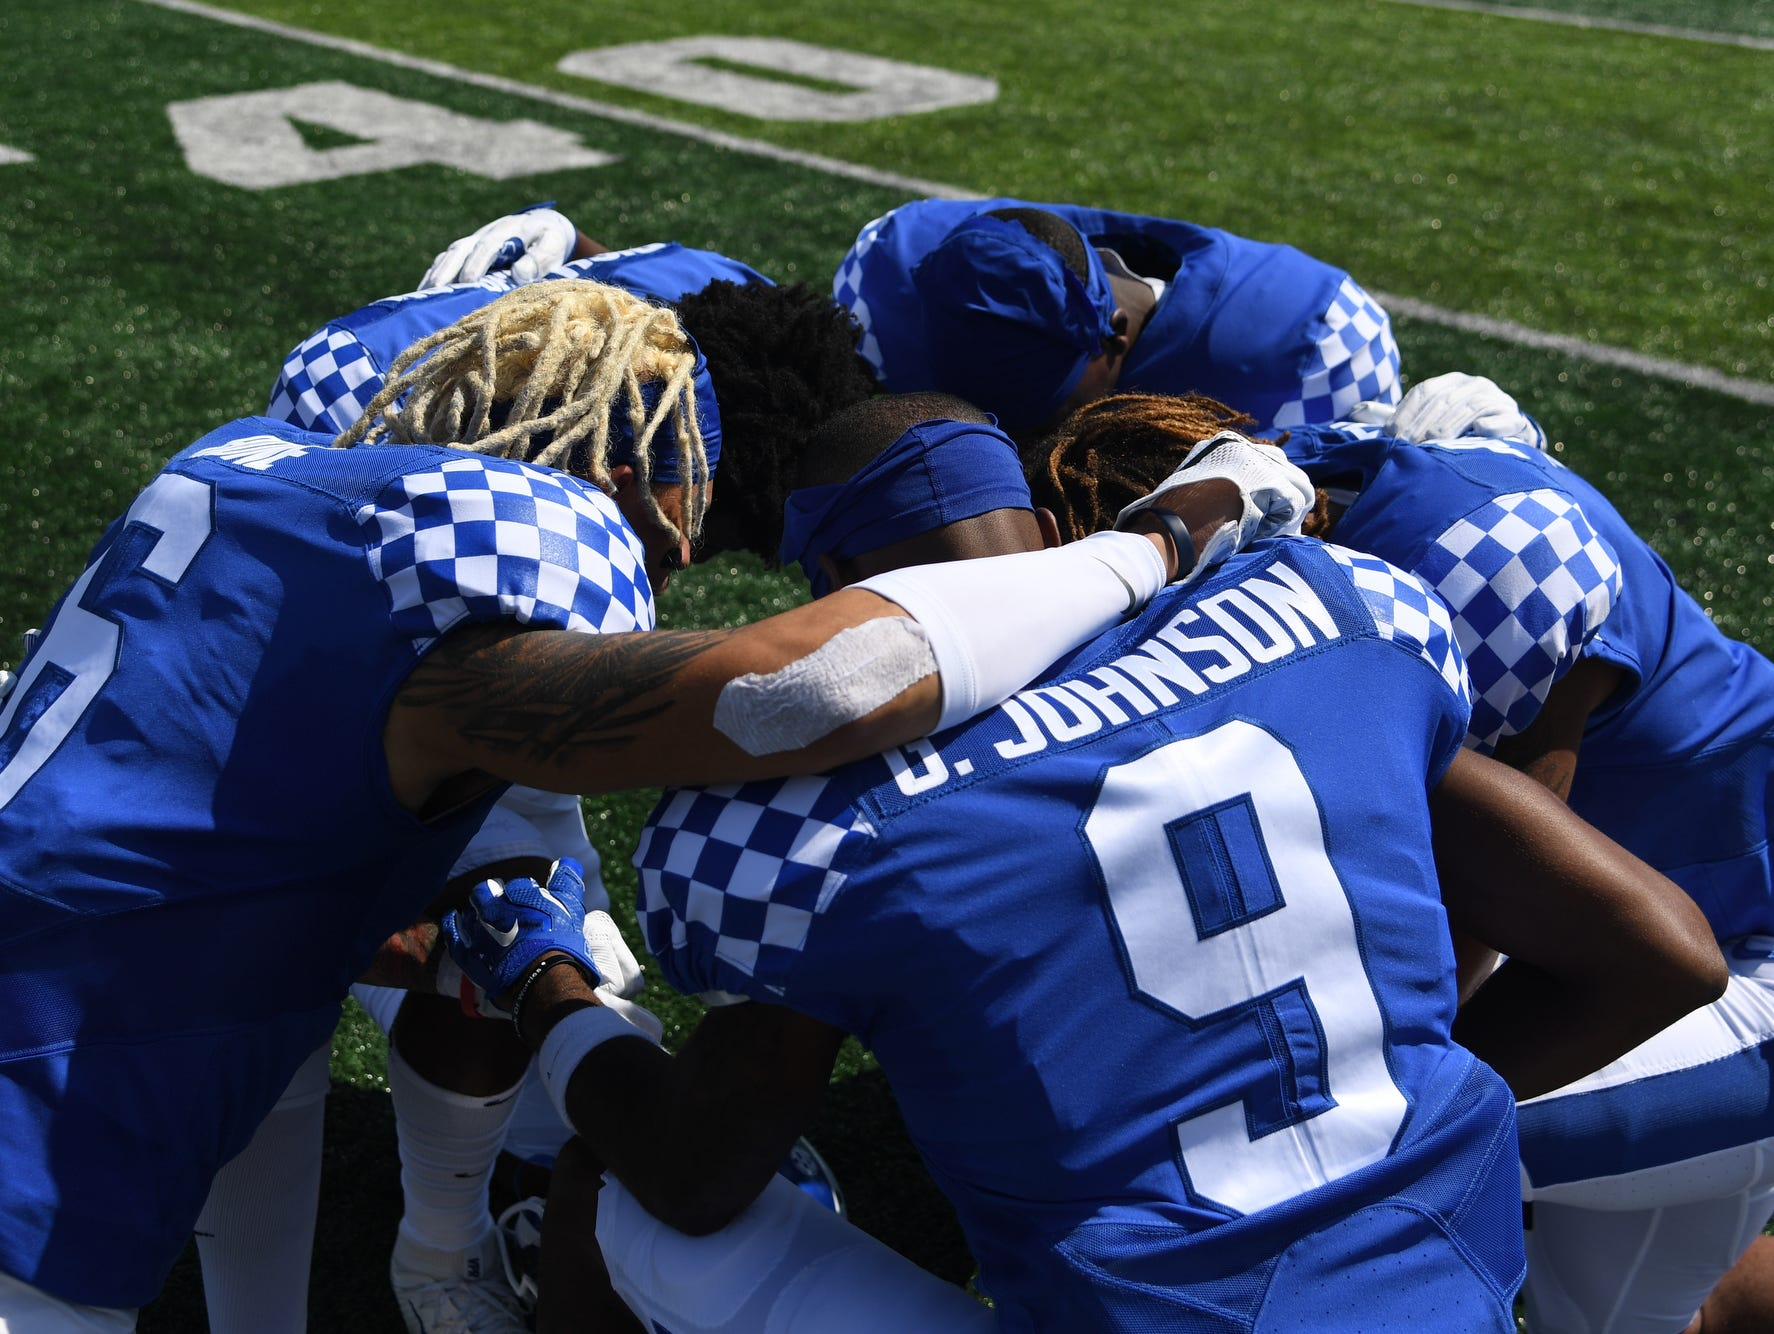 UK wide receivers before the University of Kentucky football game against Eastern Kentucky University in Lexington, KY on Saturday, September 9, 2017.